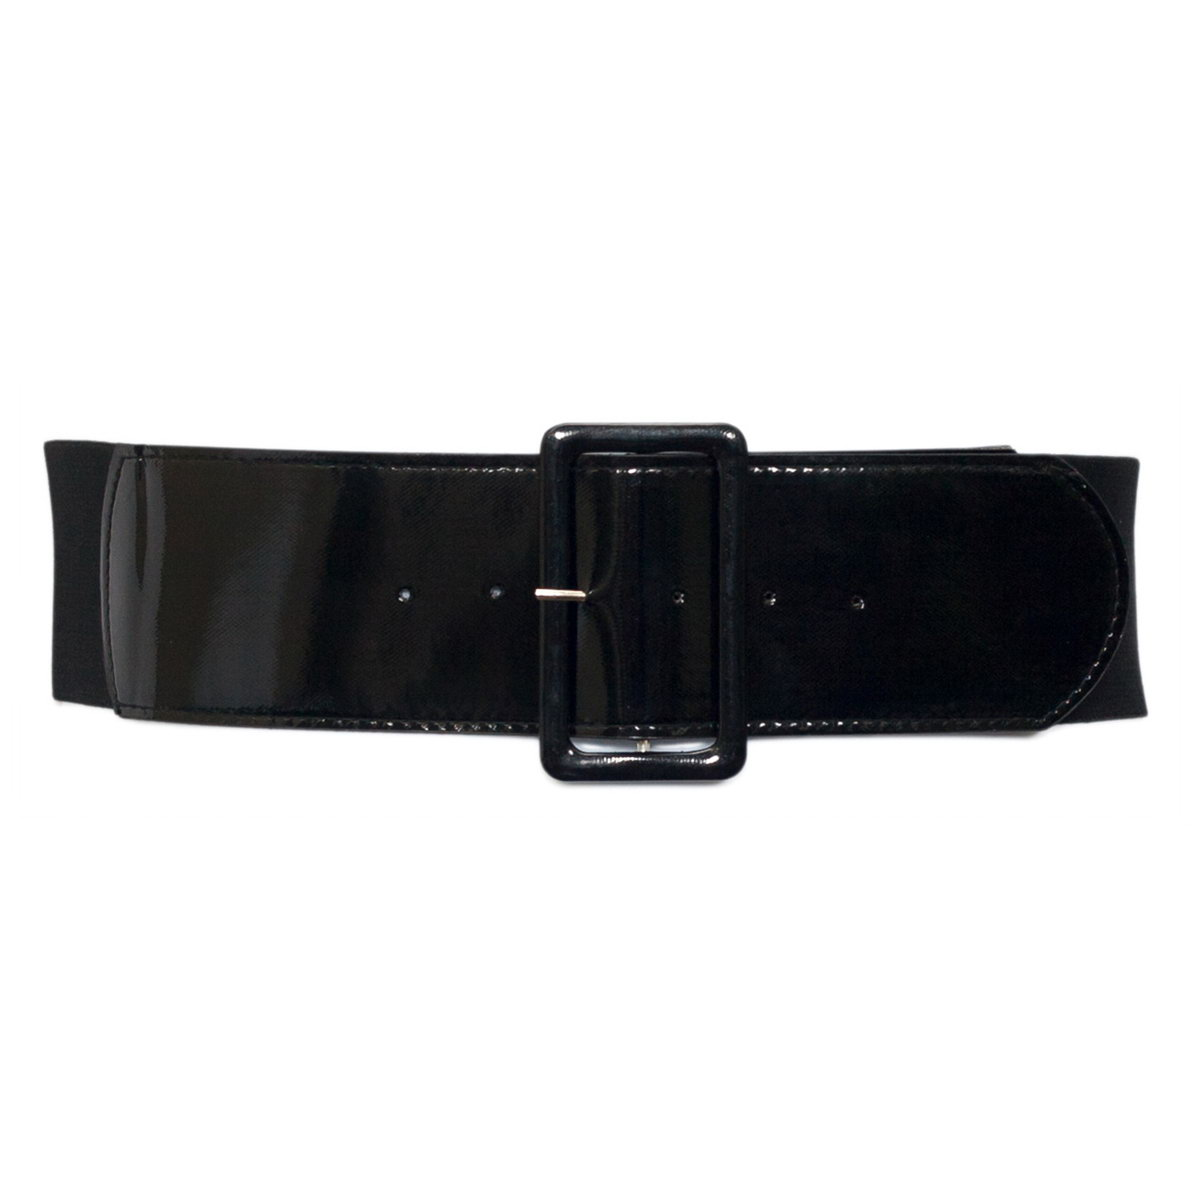 Plus Size Wide Patent Leather Fashion Belt Black Photo 1